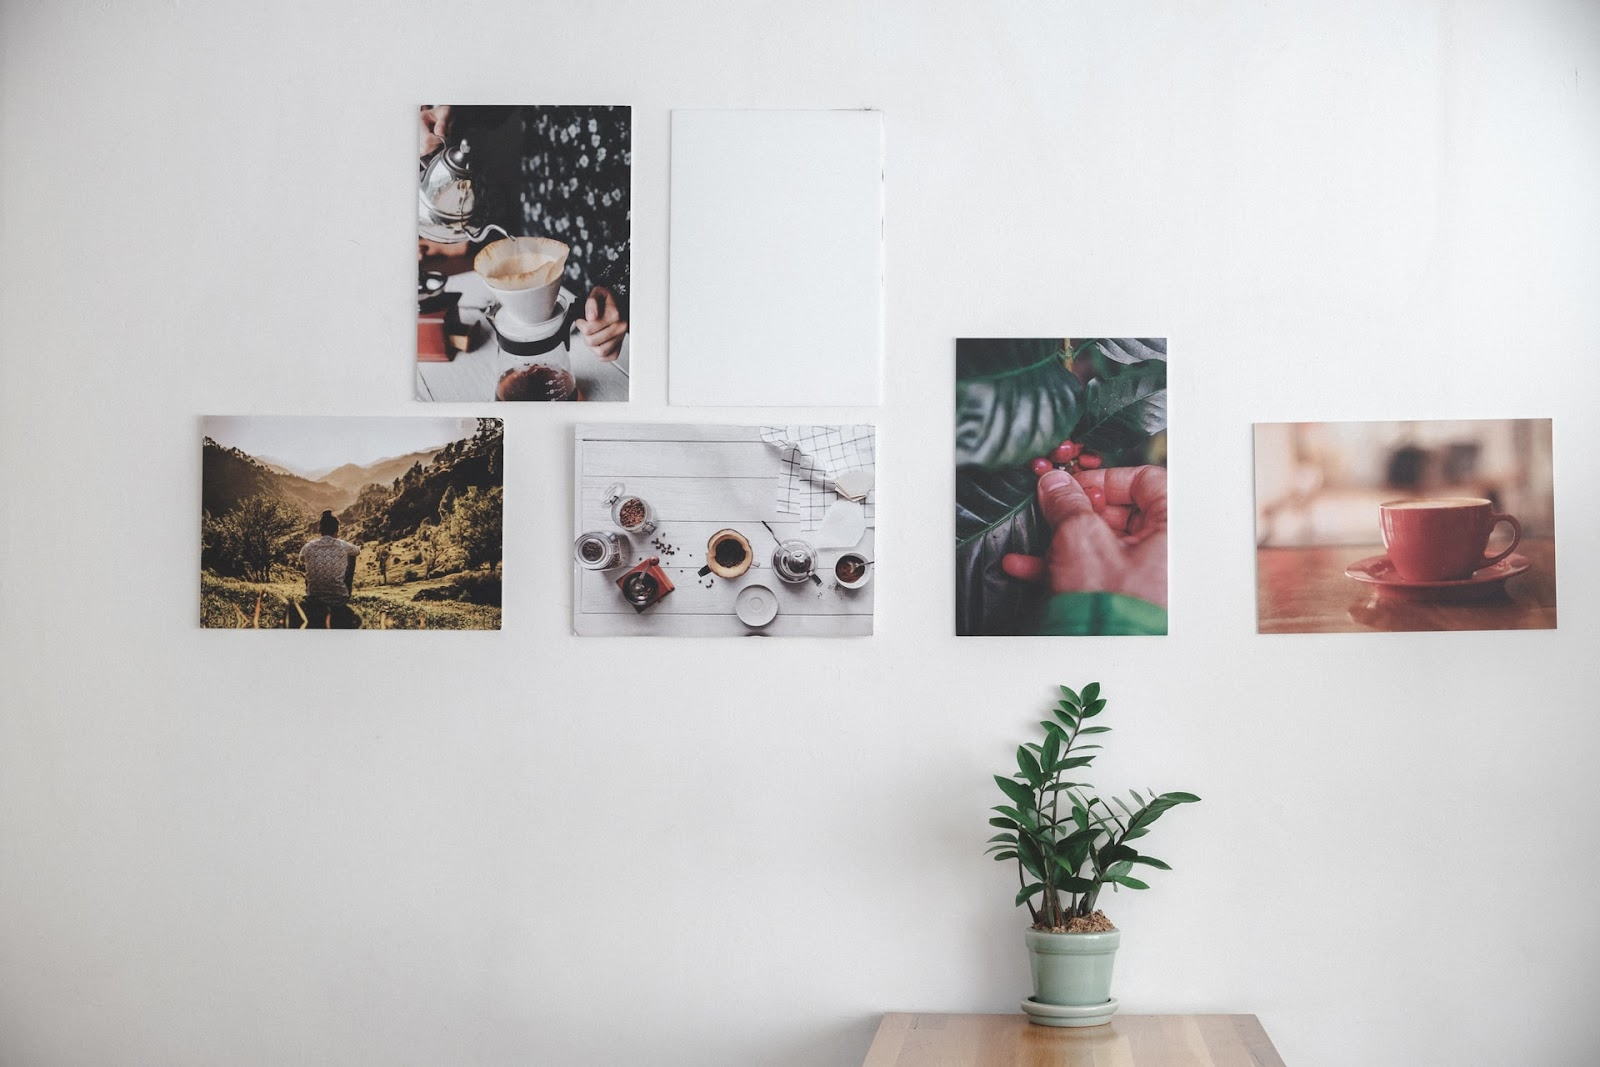 potted plant placed on a table with 5 different canvases on the wall